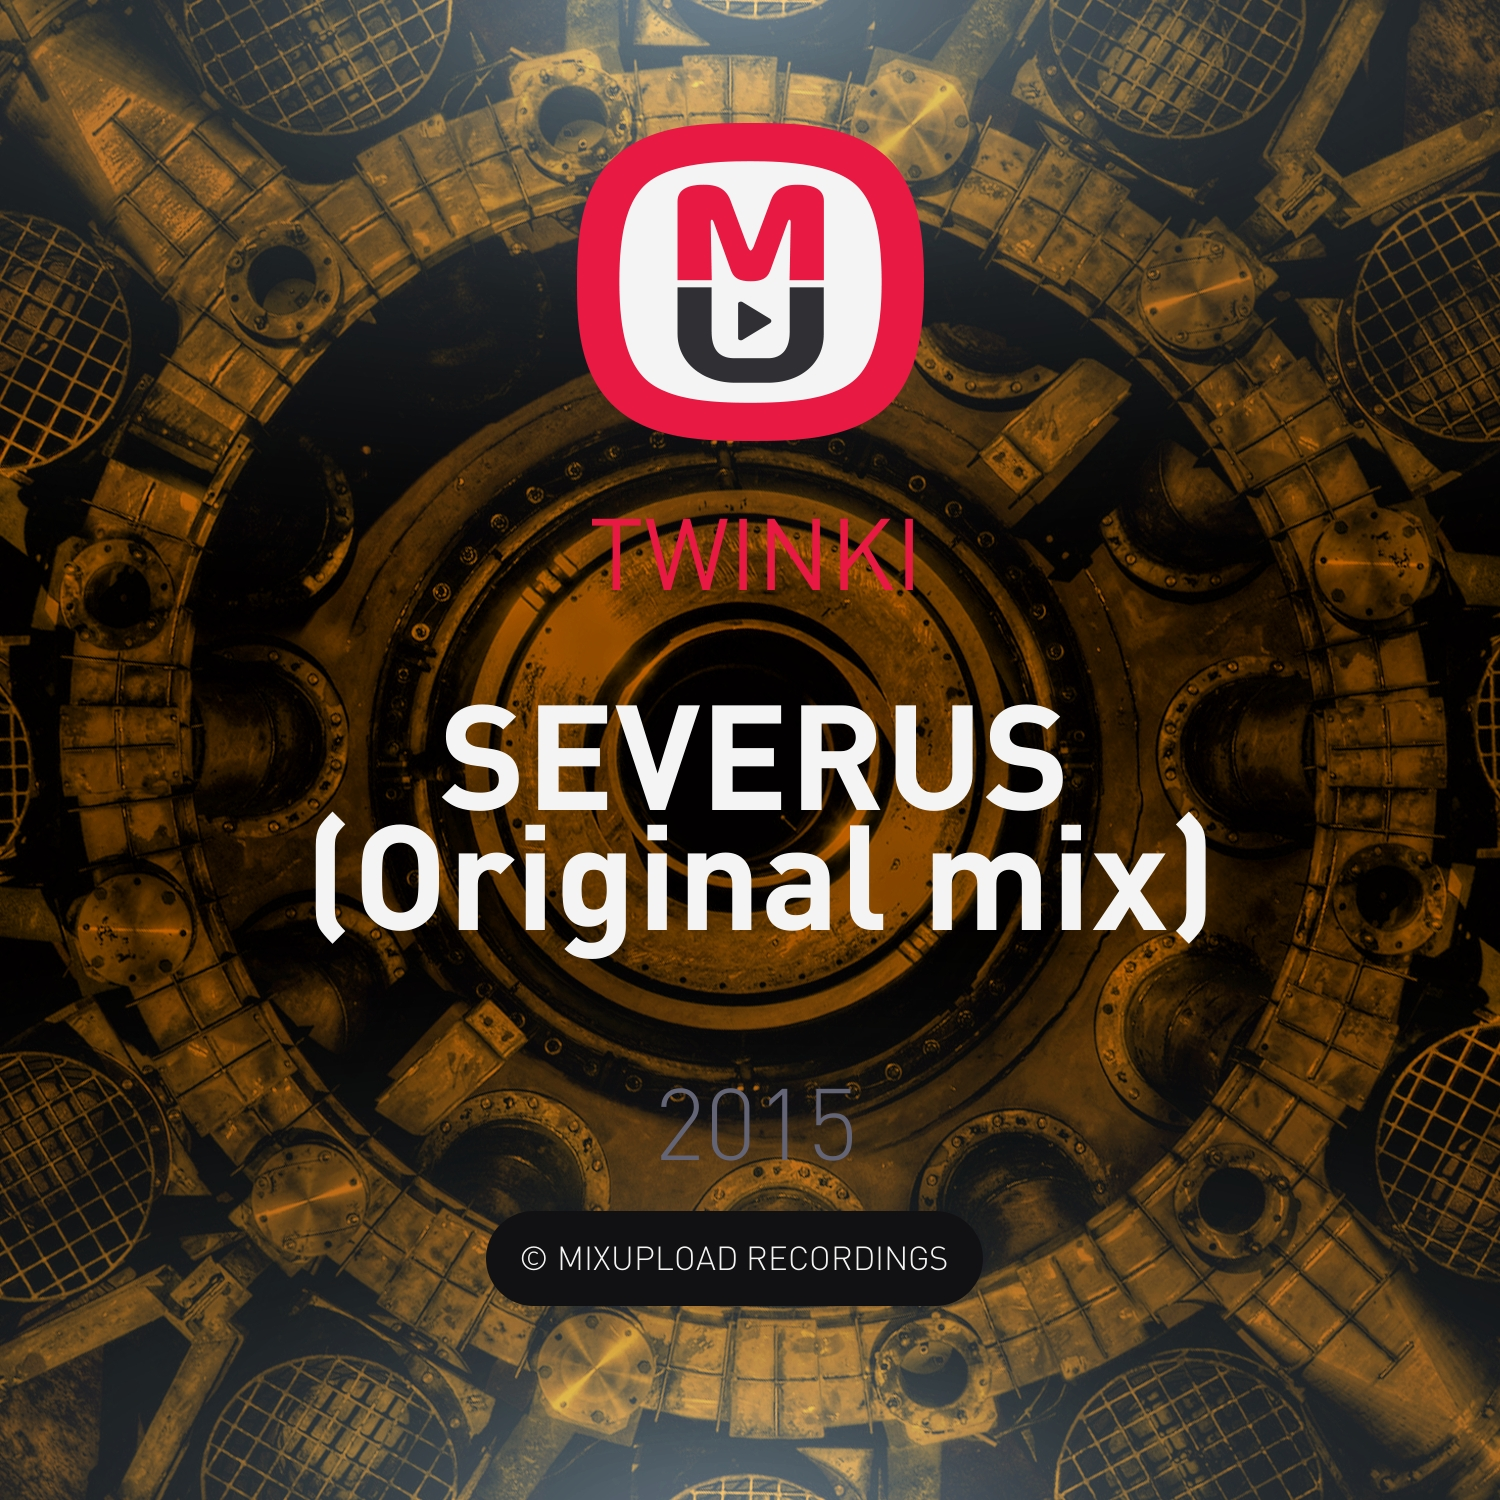 TWINKI - SEVERUS (Original mix)